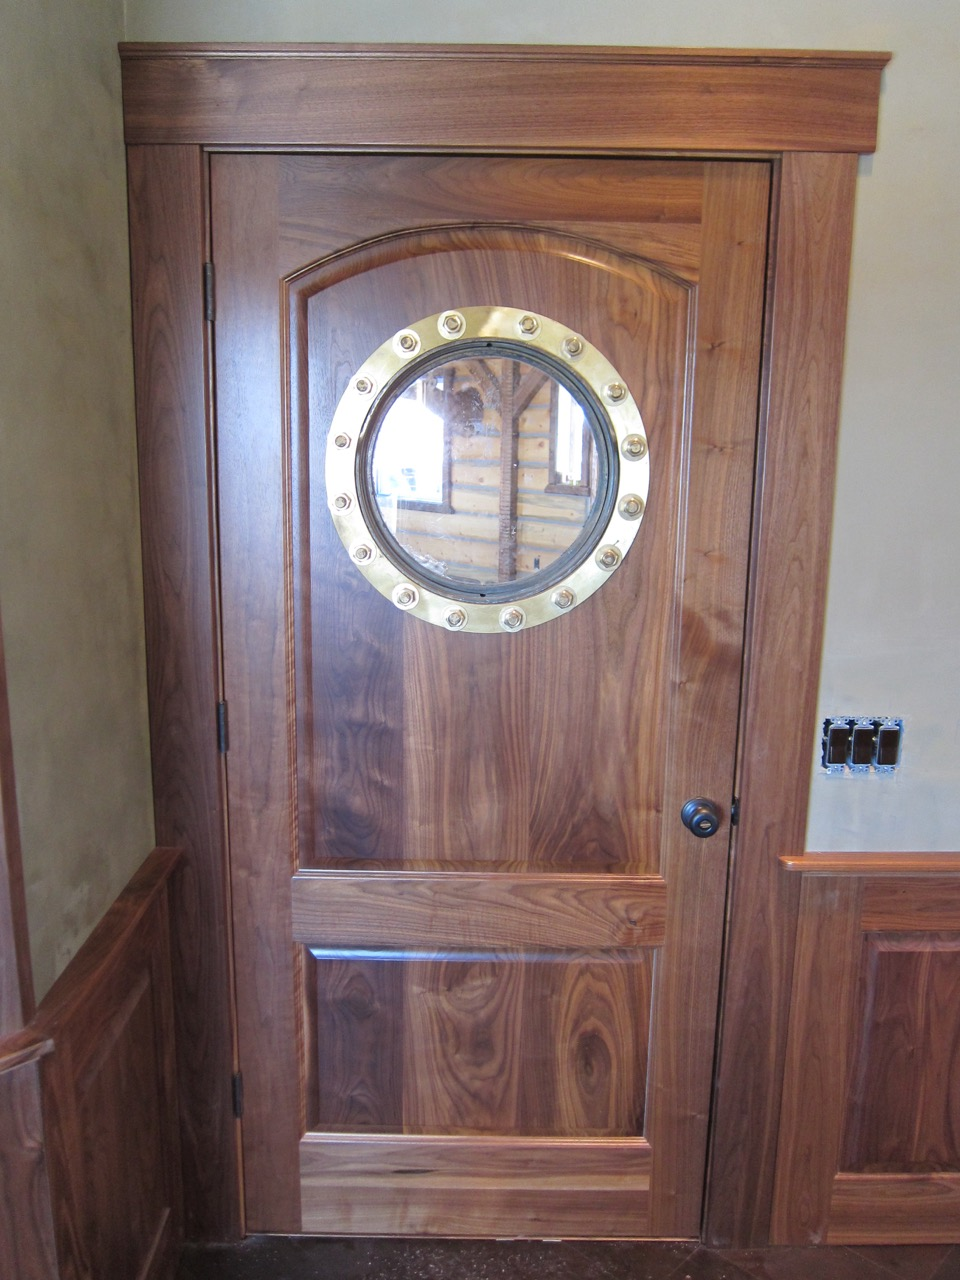 Specialty door commission by Stix